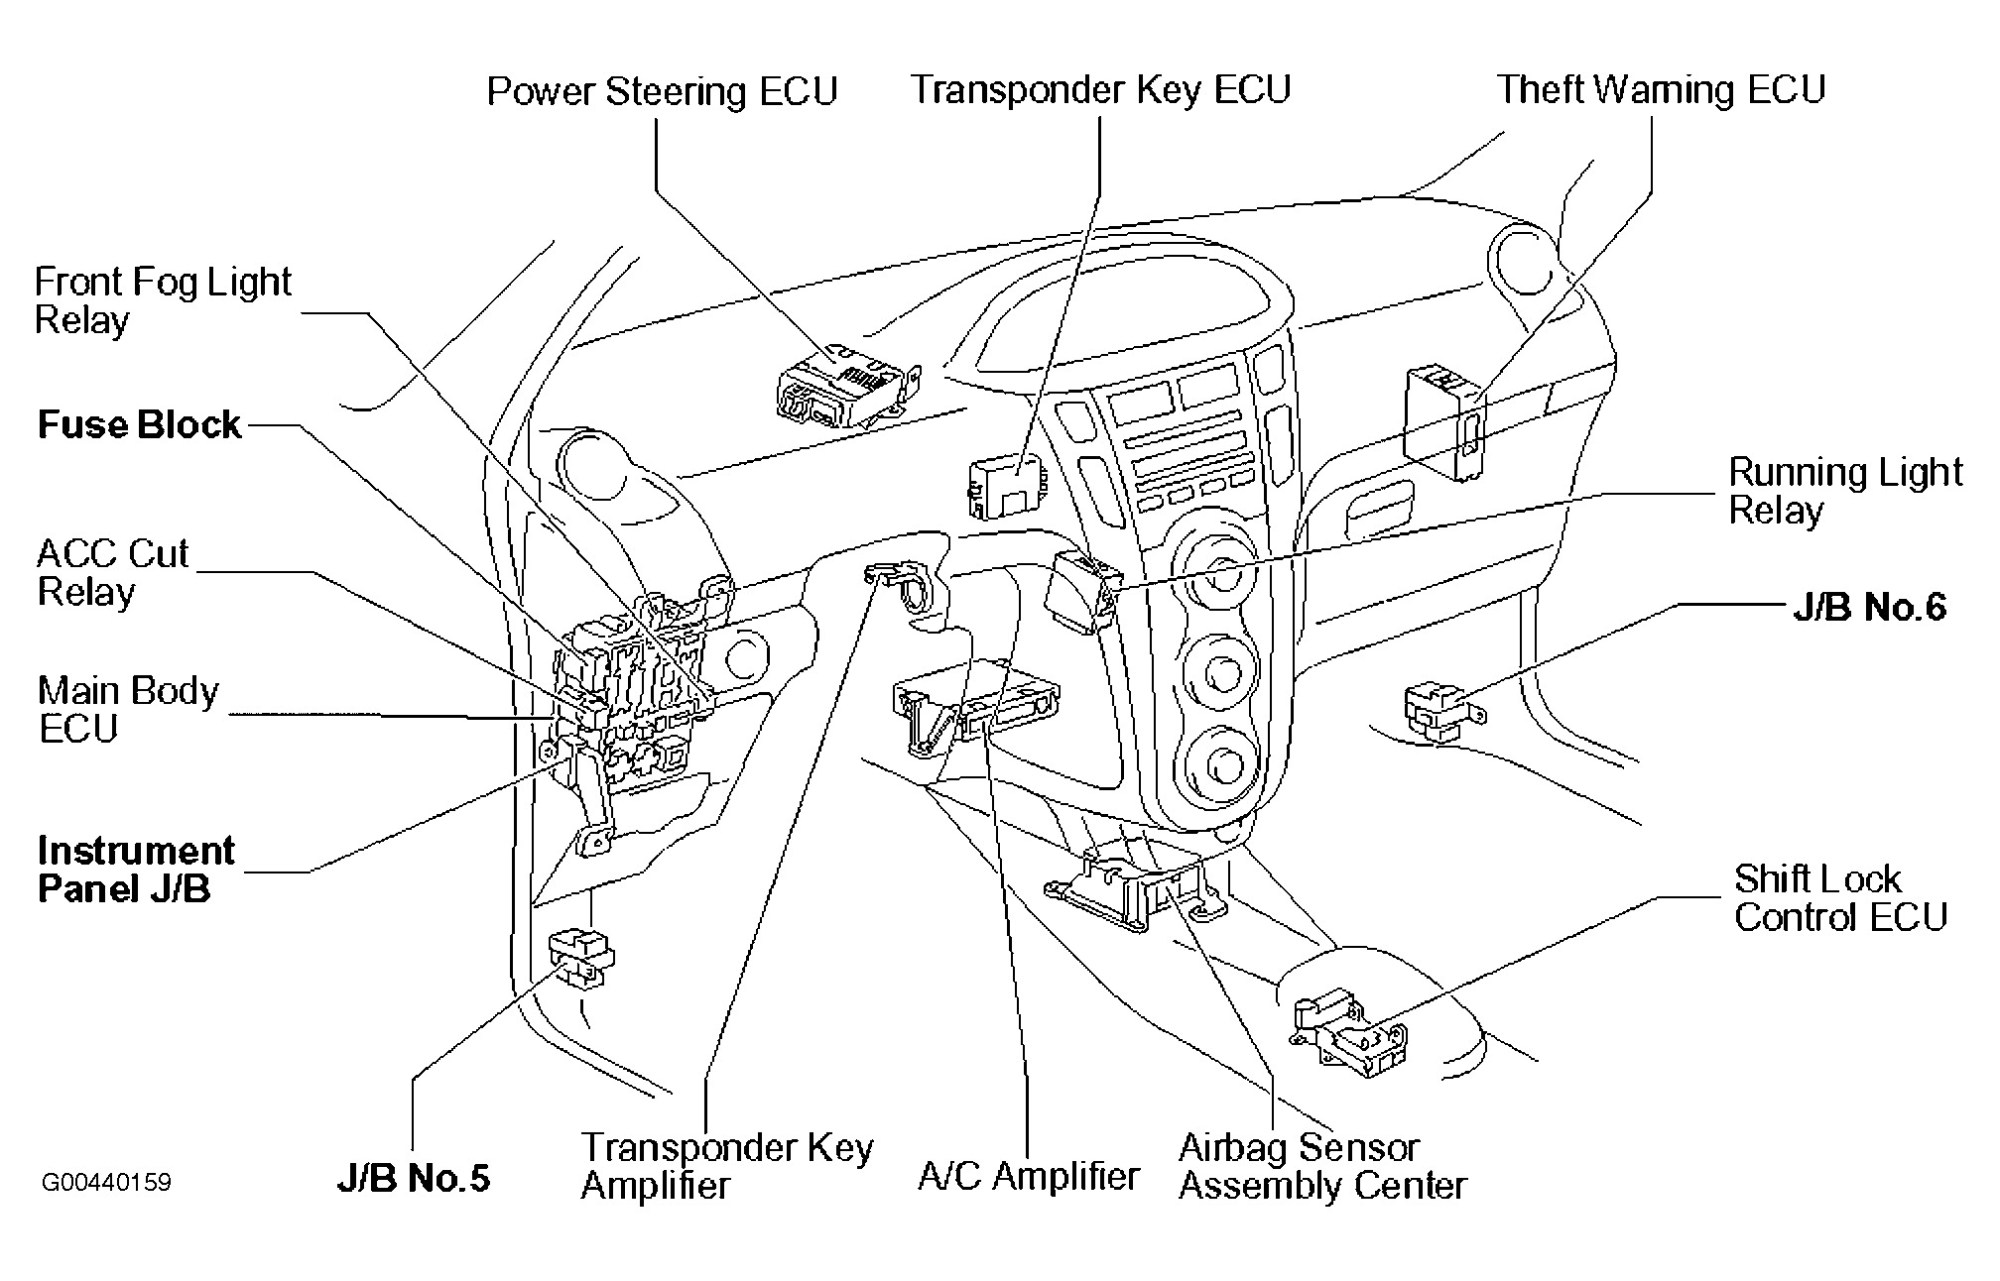 hight resolution of toyota yaris wiring diagram pdf simple wiring schema dvr wiring diagrams toyota altezza wiring diagram